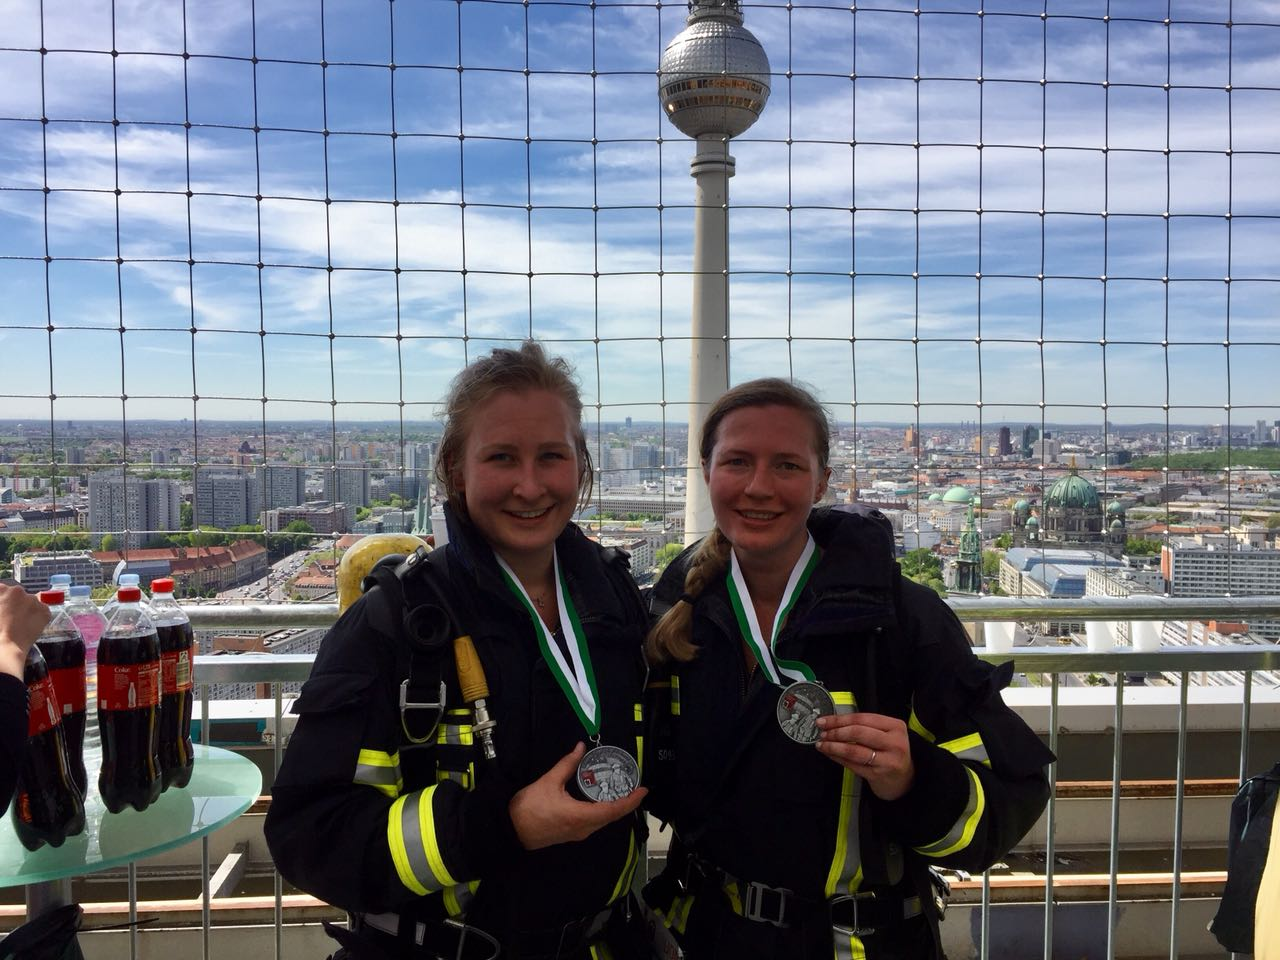 2018_05_05-8.-Firefighter-Stairrun-Berlin_01